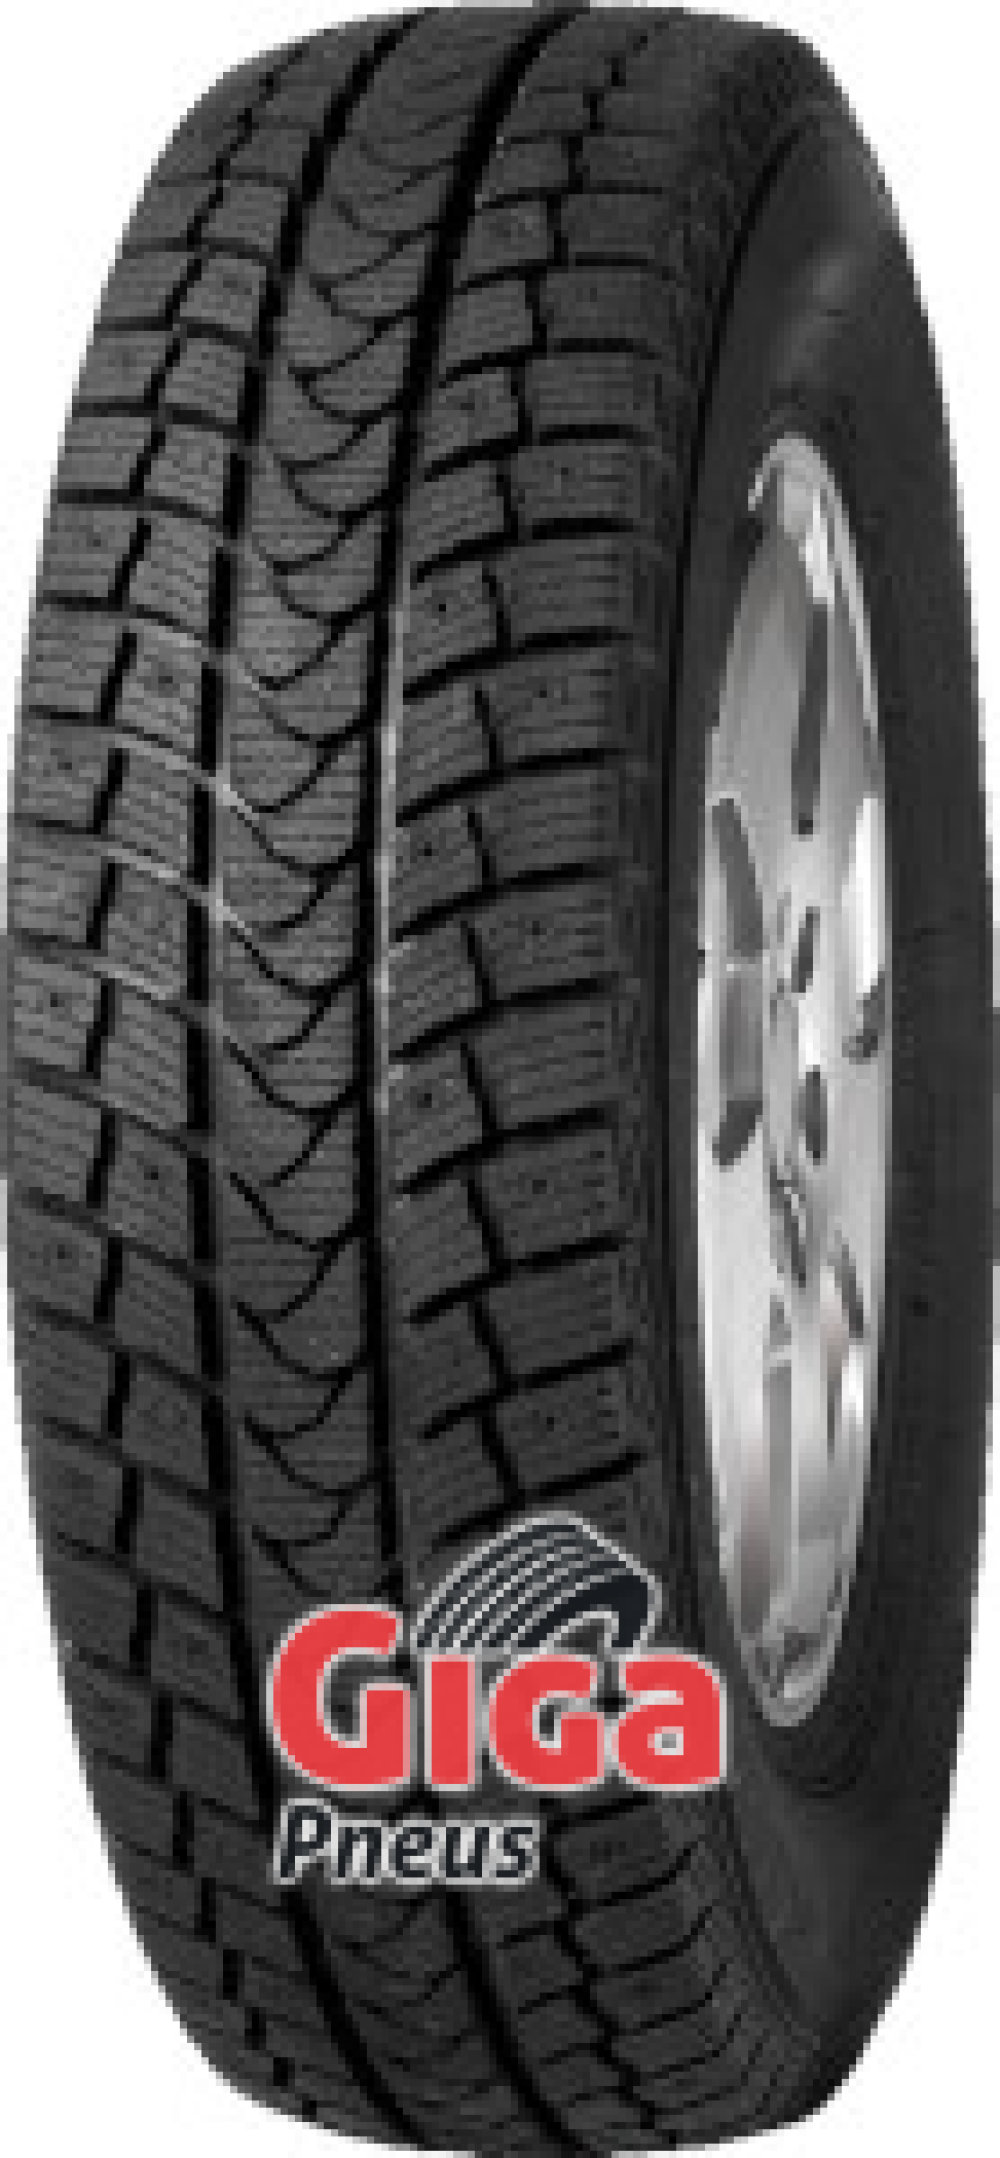 Tristar TR1 ICE-Plus SR1 ( 155 R12C 88/86Q 8PR Cloutable )